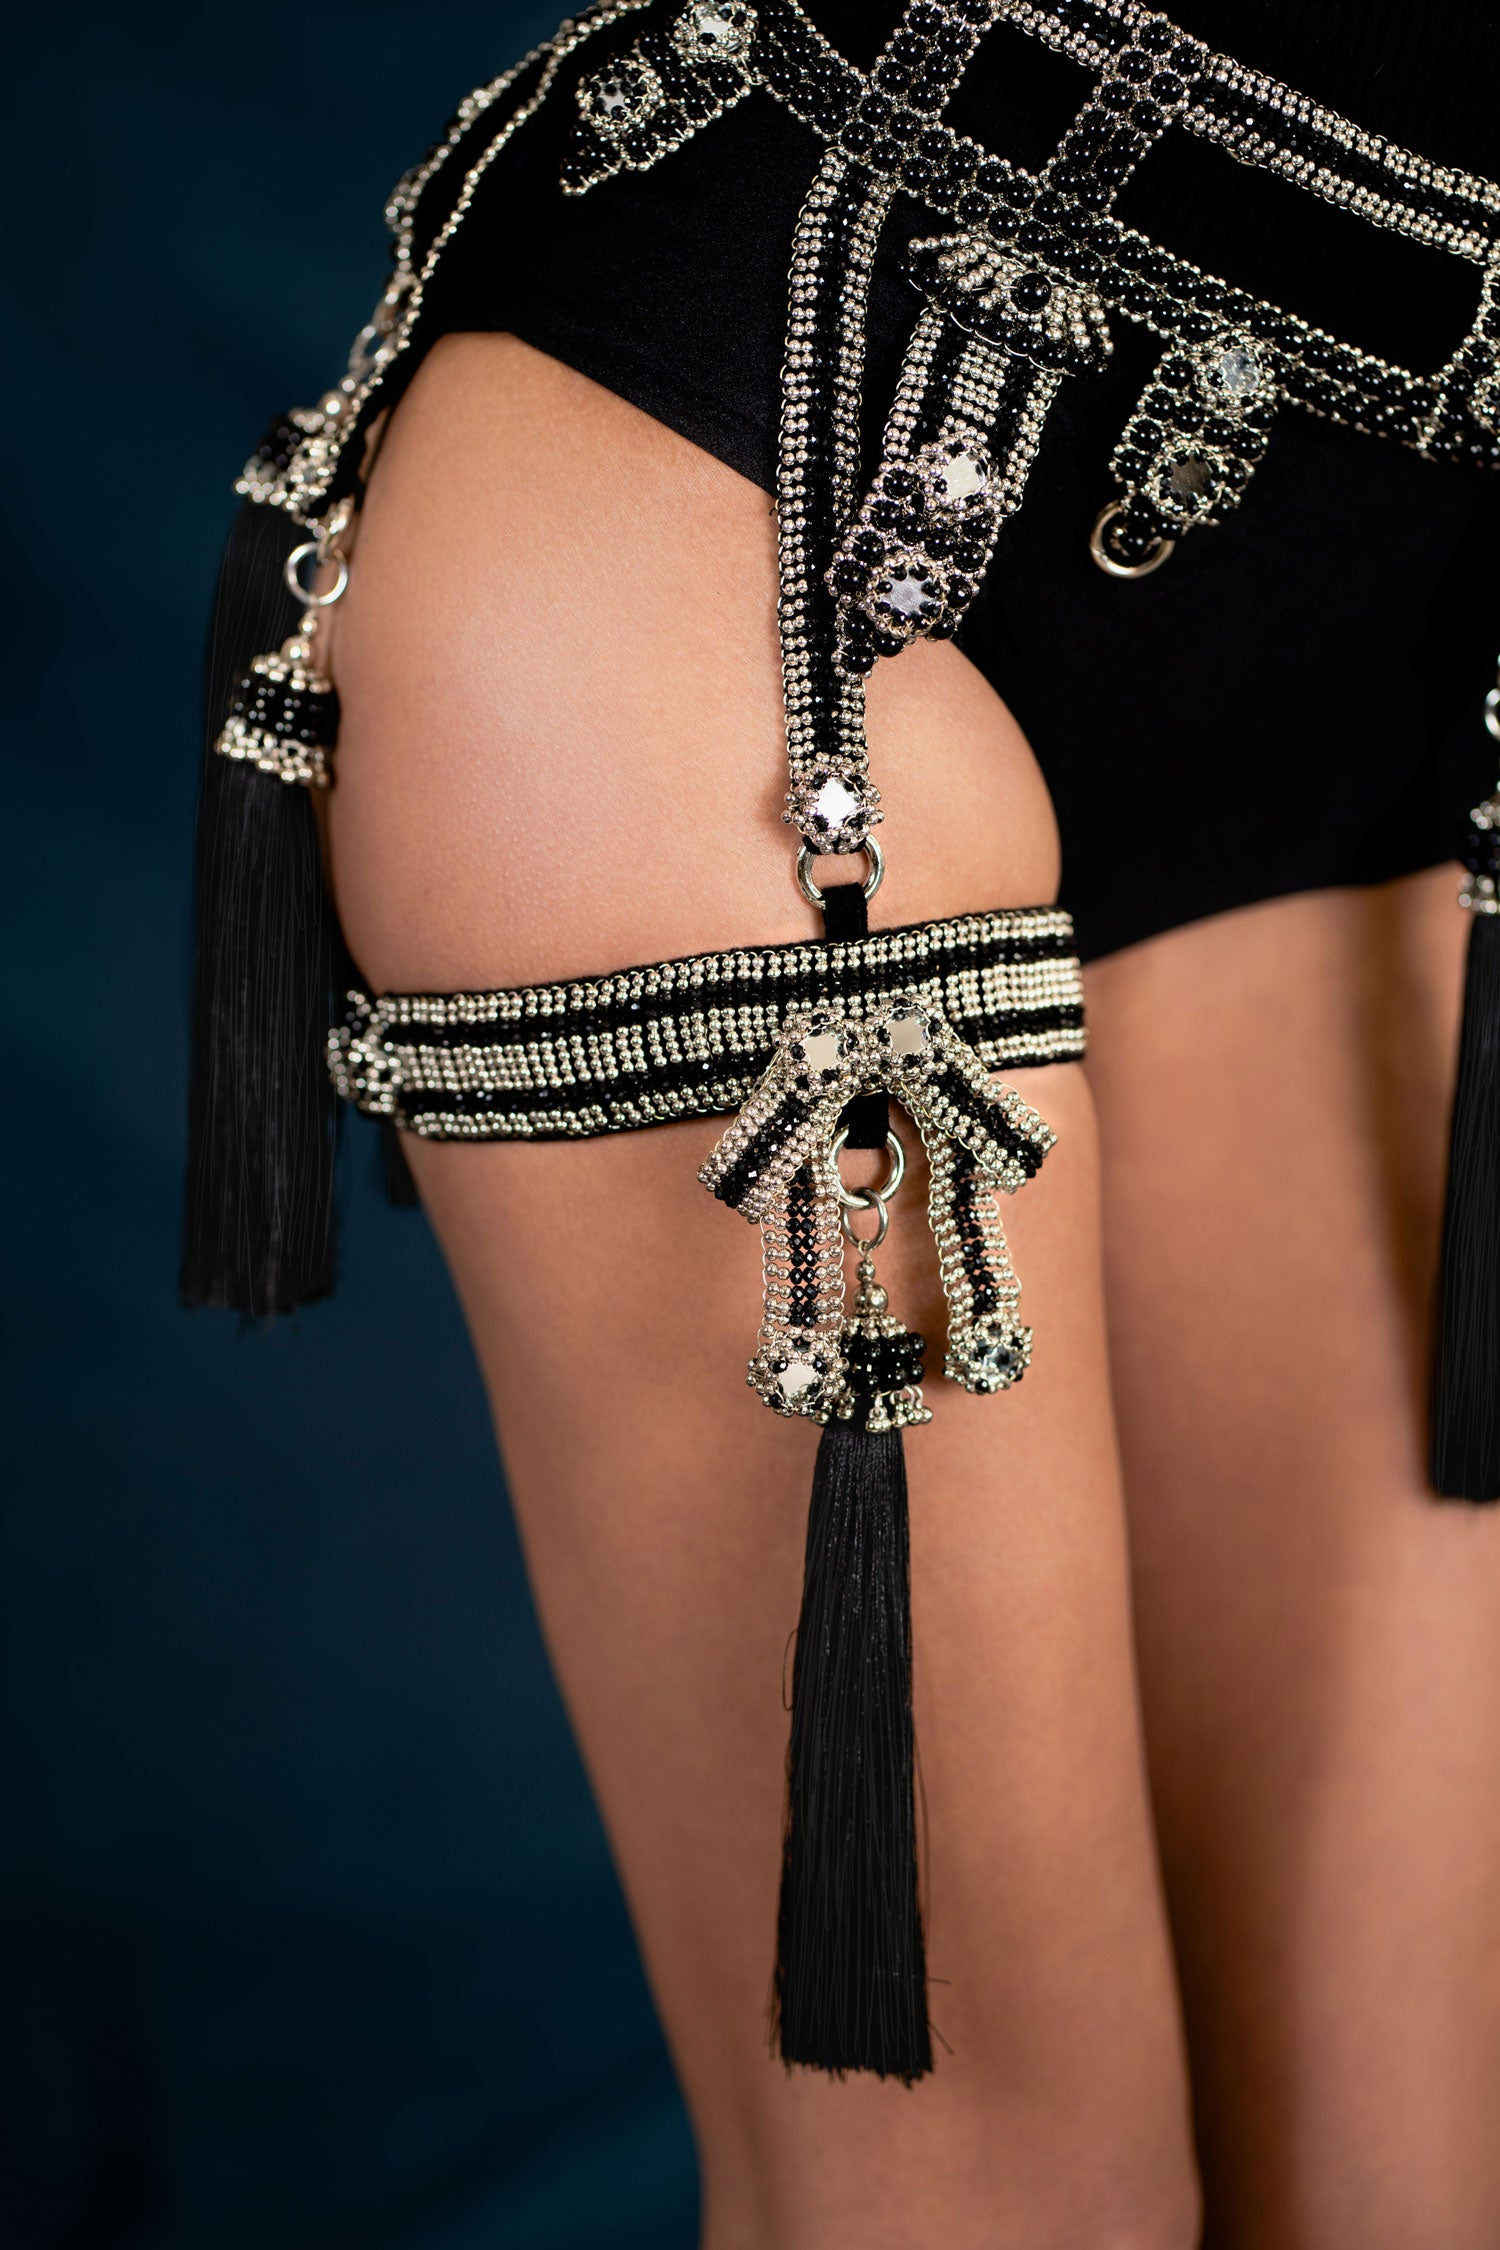 Amaya Modular Garter Band with Removable Tassel